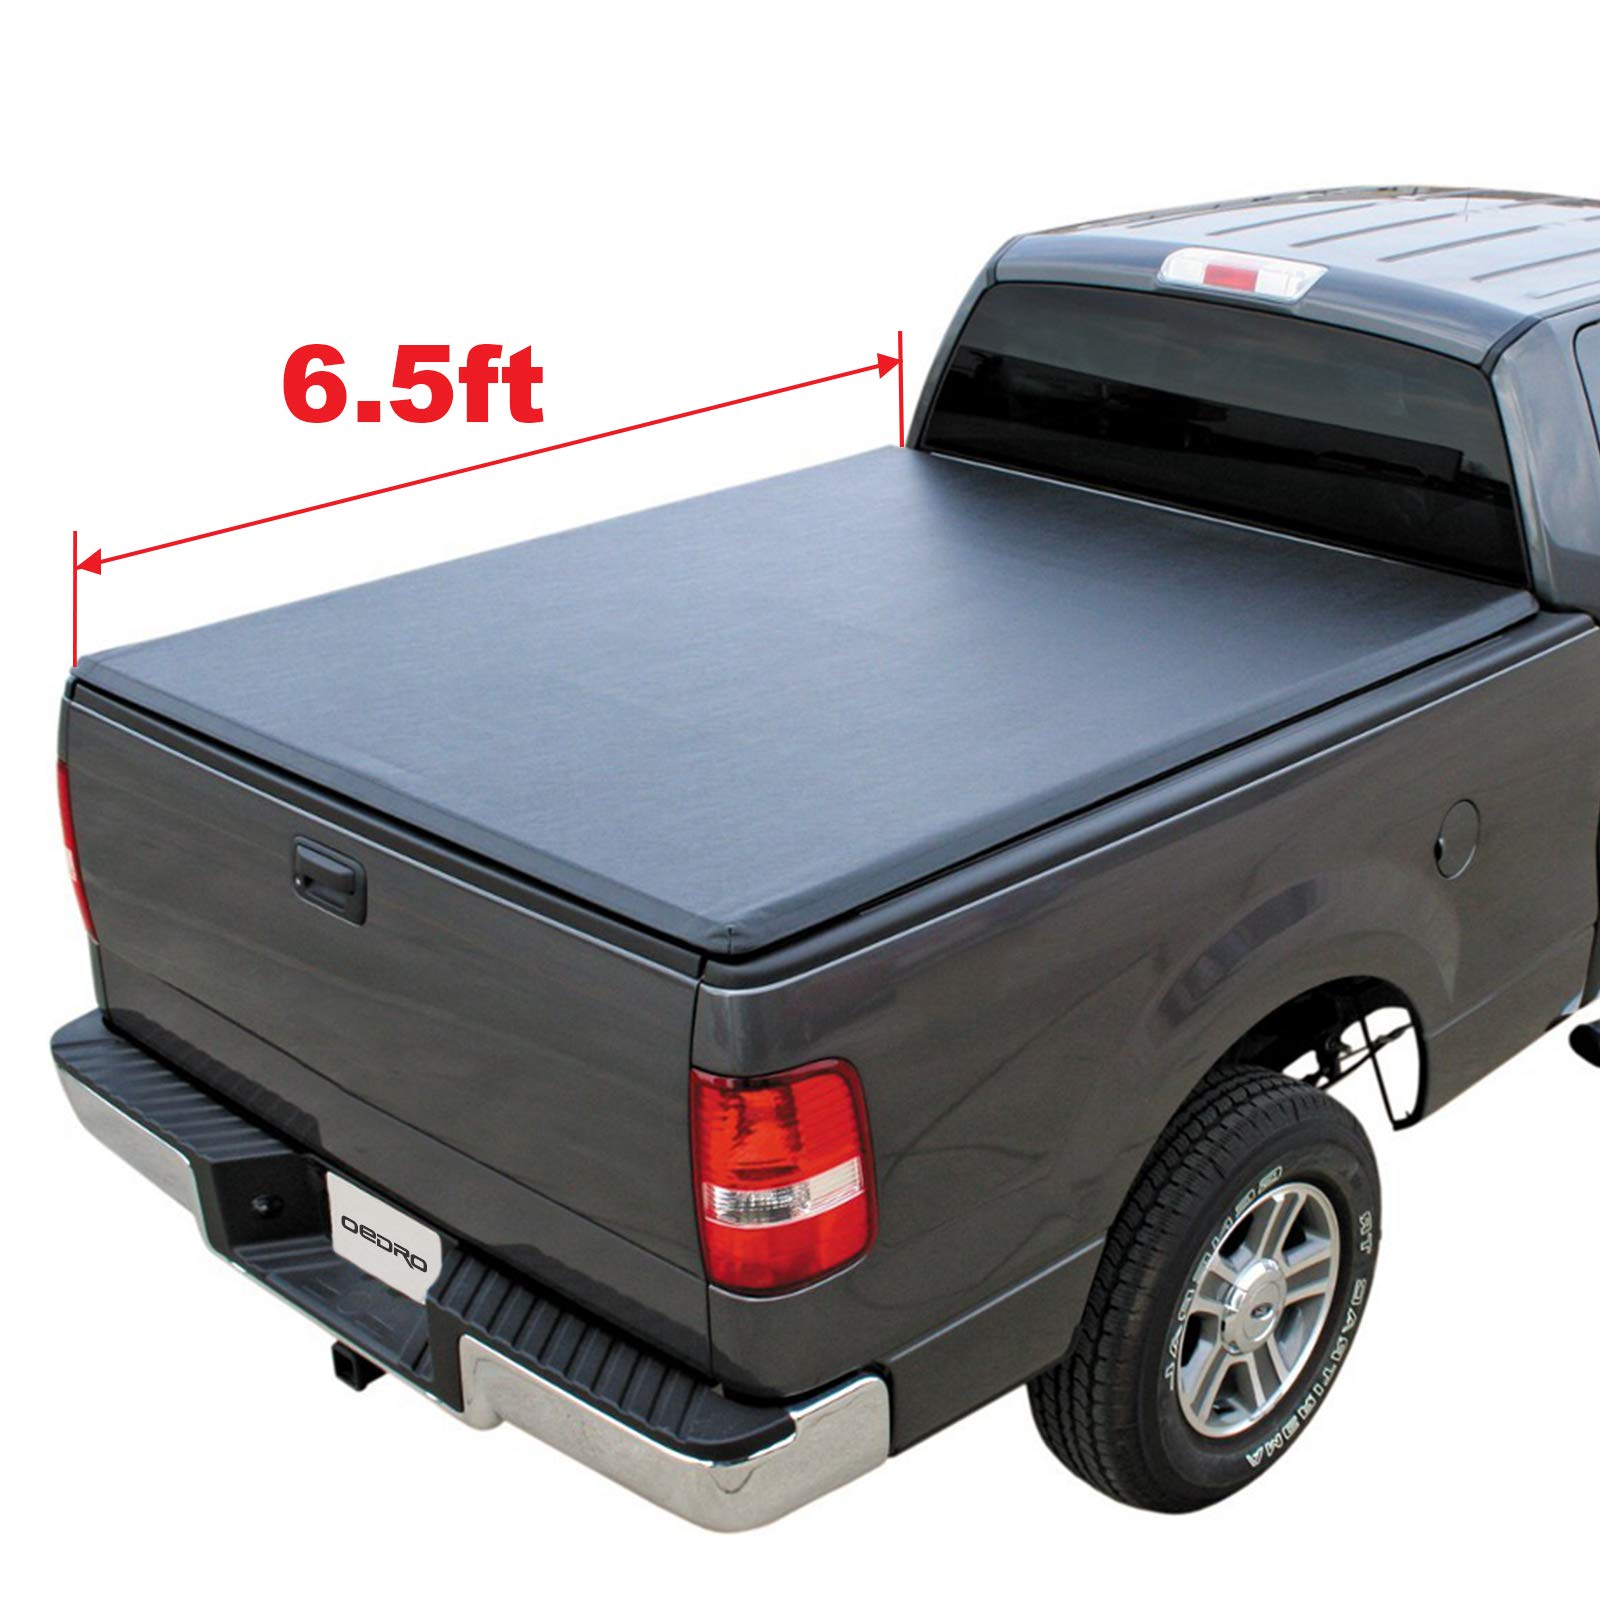 Oedro Tri Fold Truck Bed Tonneau Cover Compatible With 2002 2020 Dodge Ram 1500 2003 2018 Dodge Ram 2500 3500 Fleetside 6 5 Feet Bed For Models Without Ram Box Buy Online In India At Desertcart